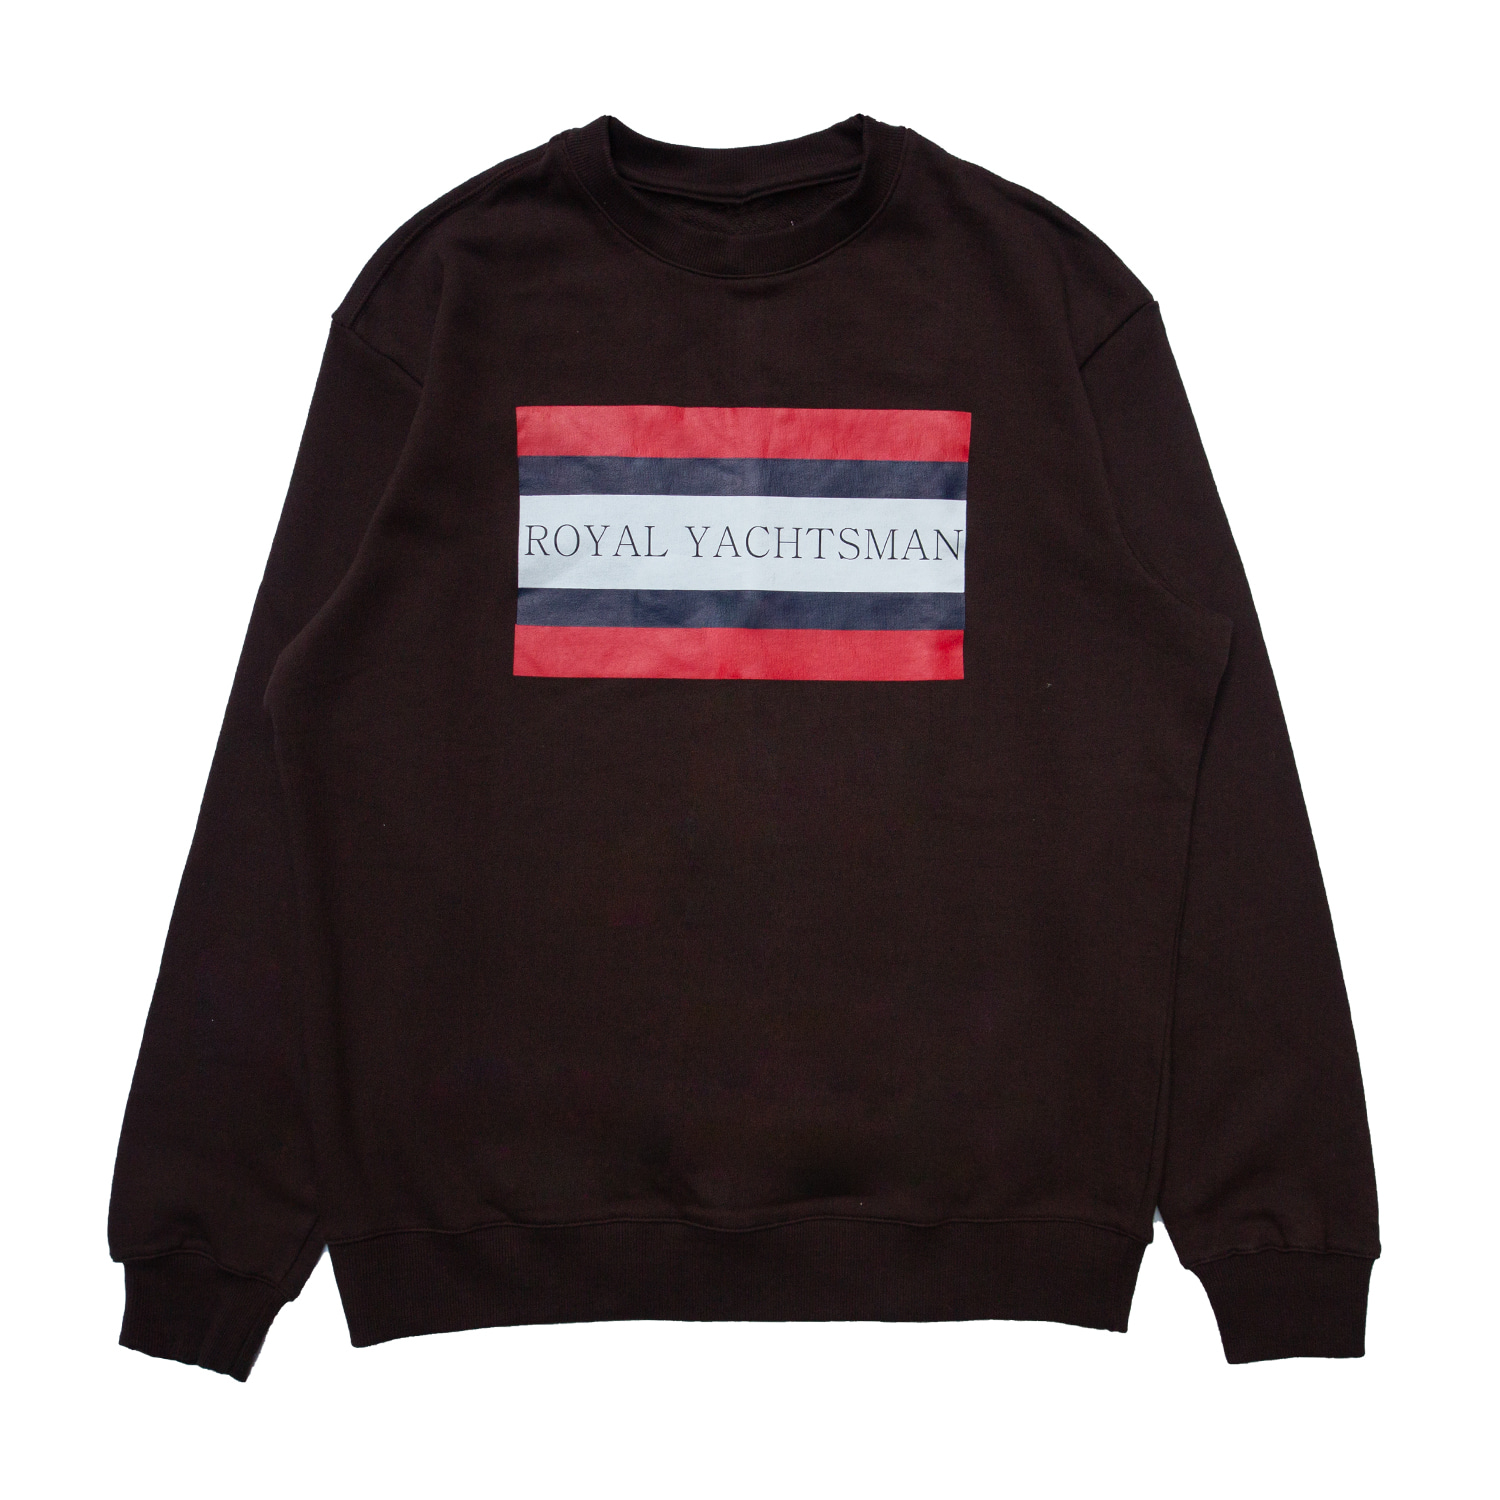 [85% OFF]ROYAL YACHTSMAN PRINTED SWEATSHIRT(BROWN)